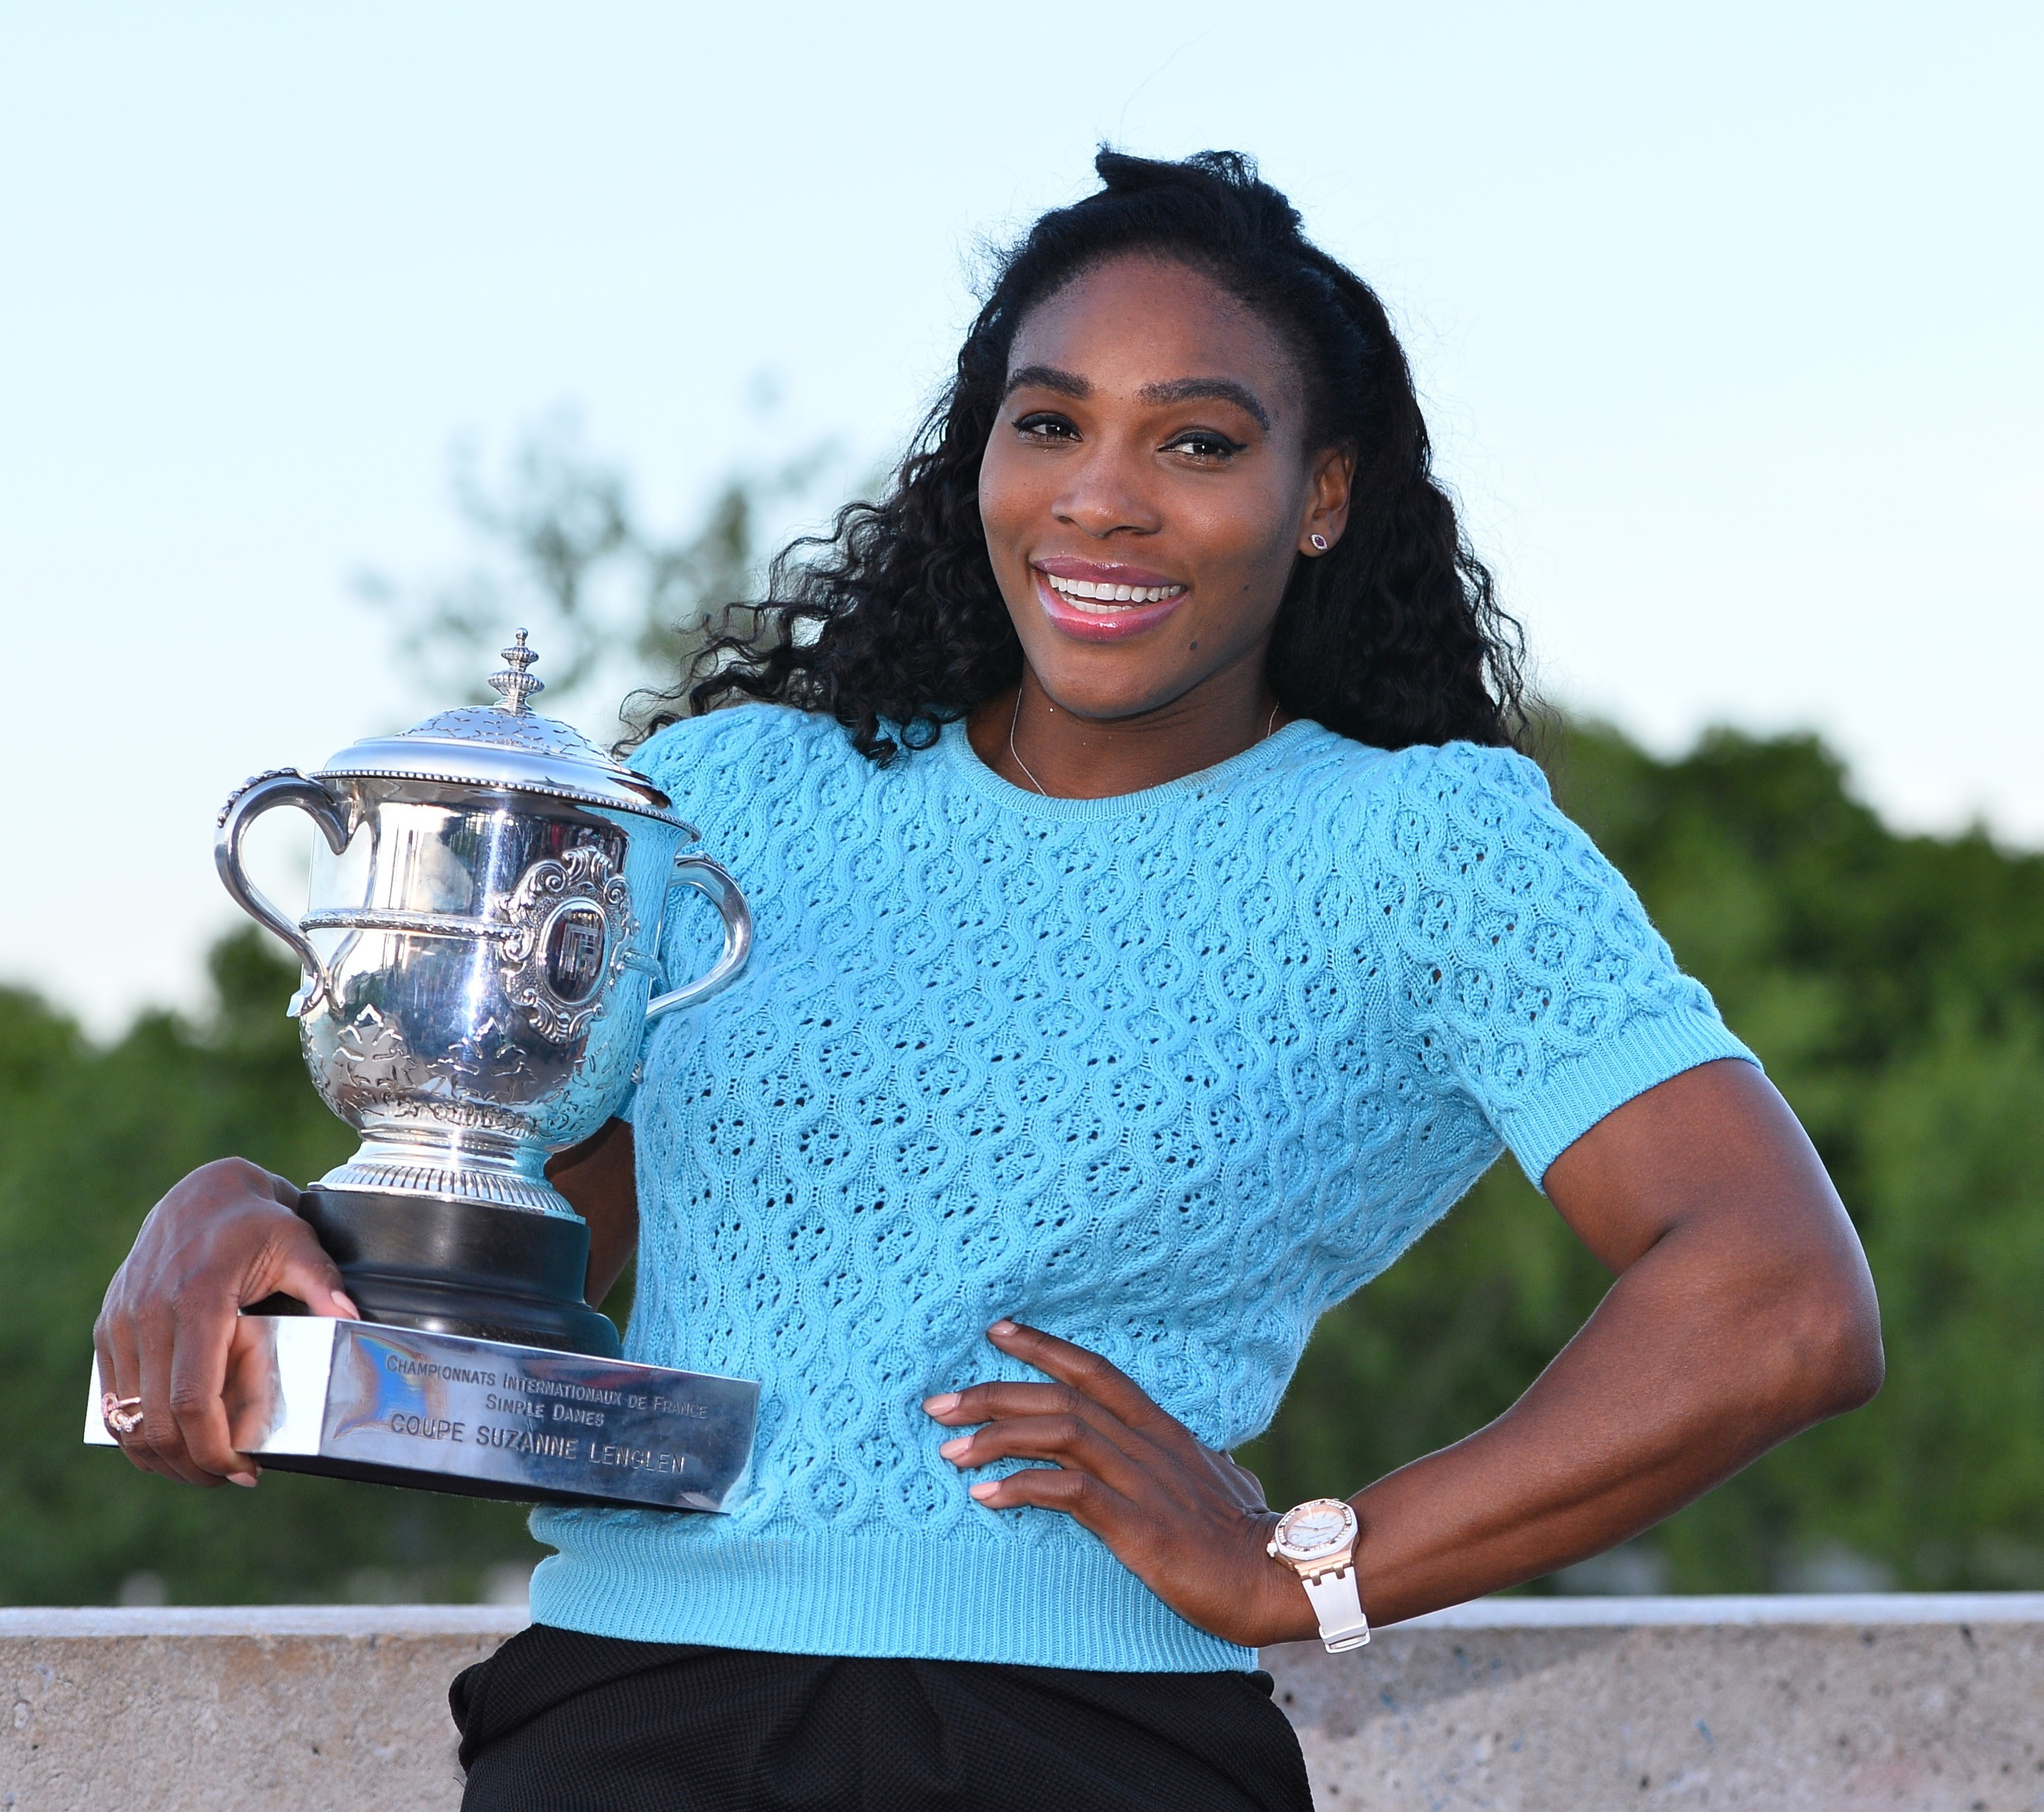 Serena Williams poses with the winner's trophy at the Bir-Hakeim bridge after winning the women's final of the French Open tennis championships at Roland Garros in Paris, France on June 6, 2015.